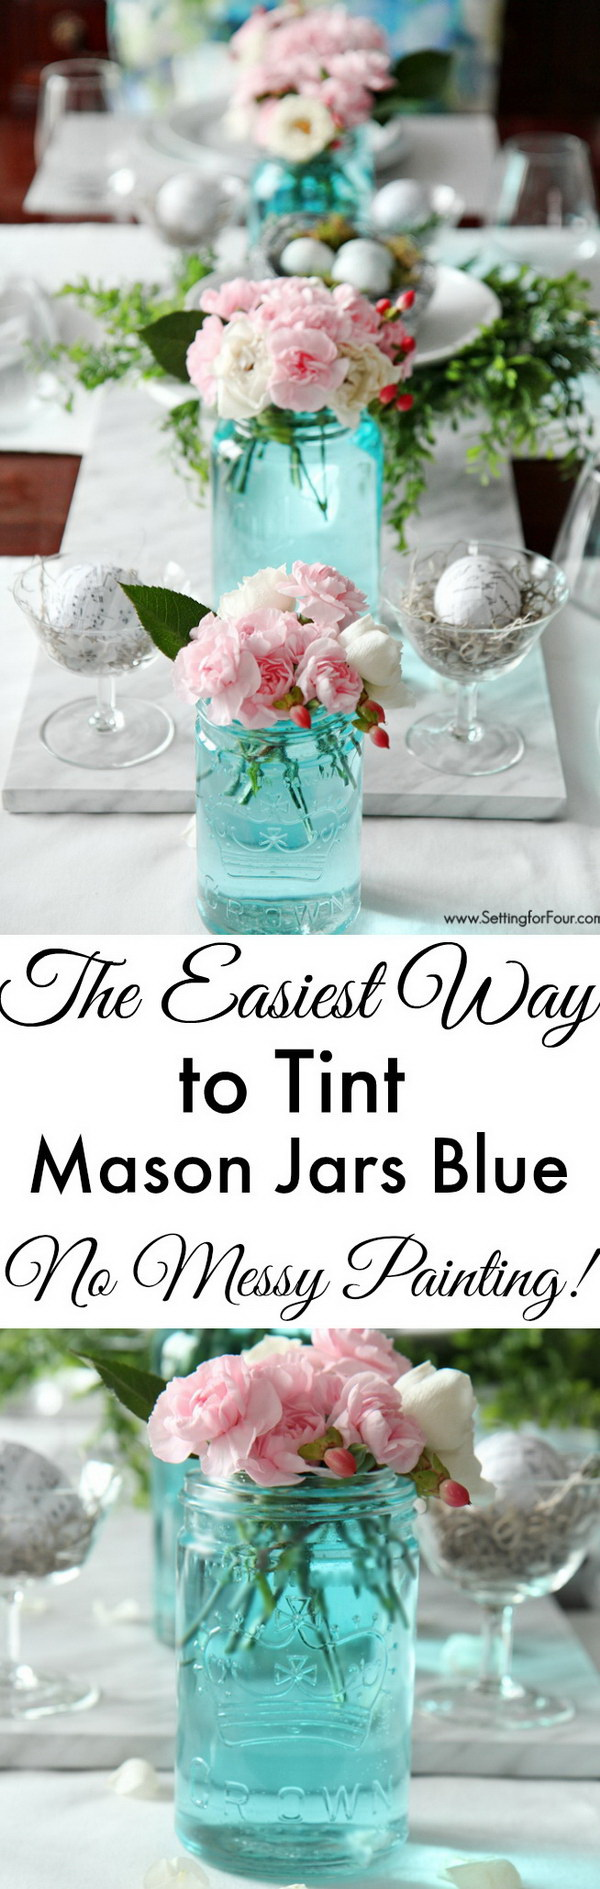 Beautiful Tint Mason Jars Blue for Wedding Decor.